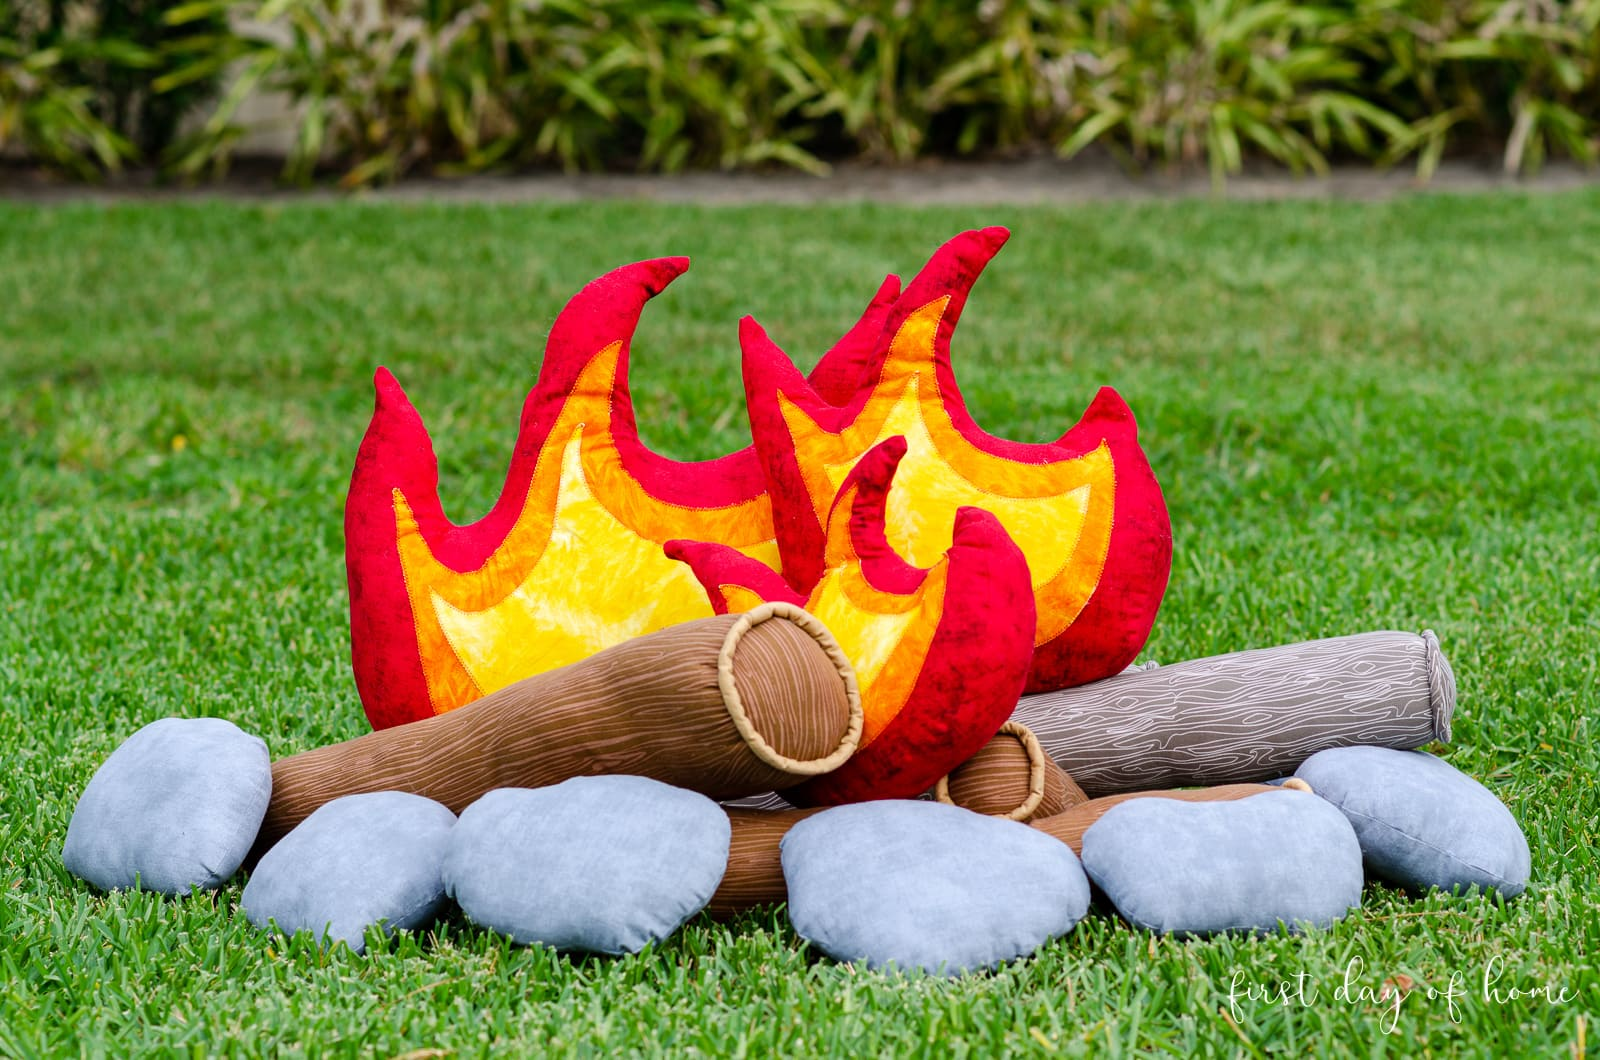 Pretend campfire set for kids with flames, logs and stones